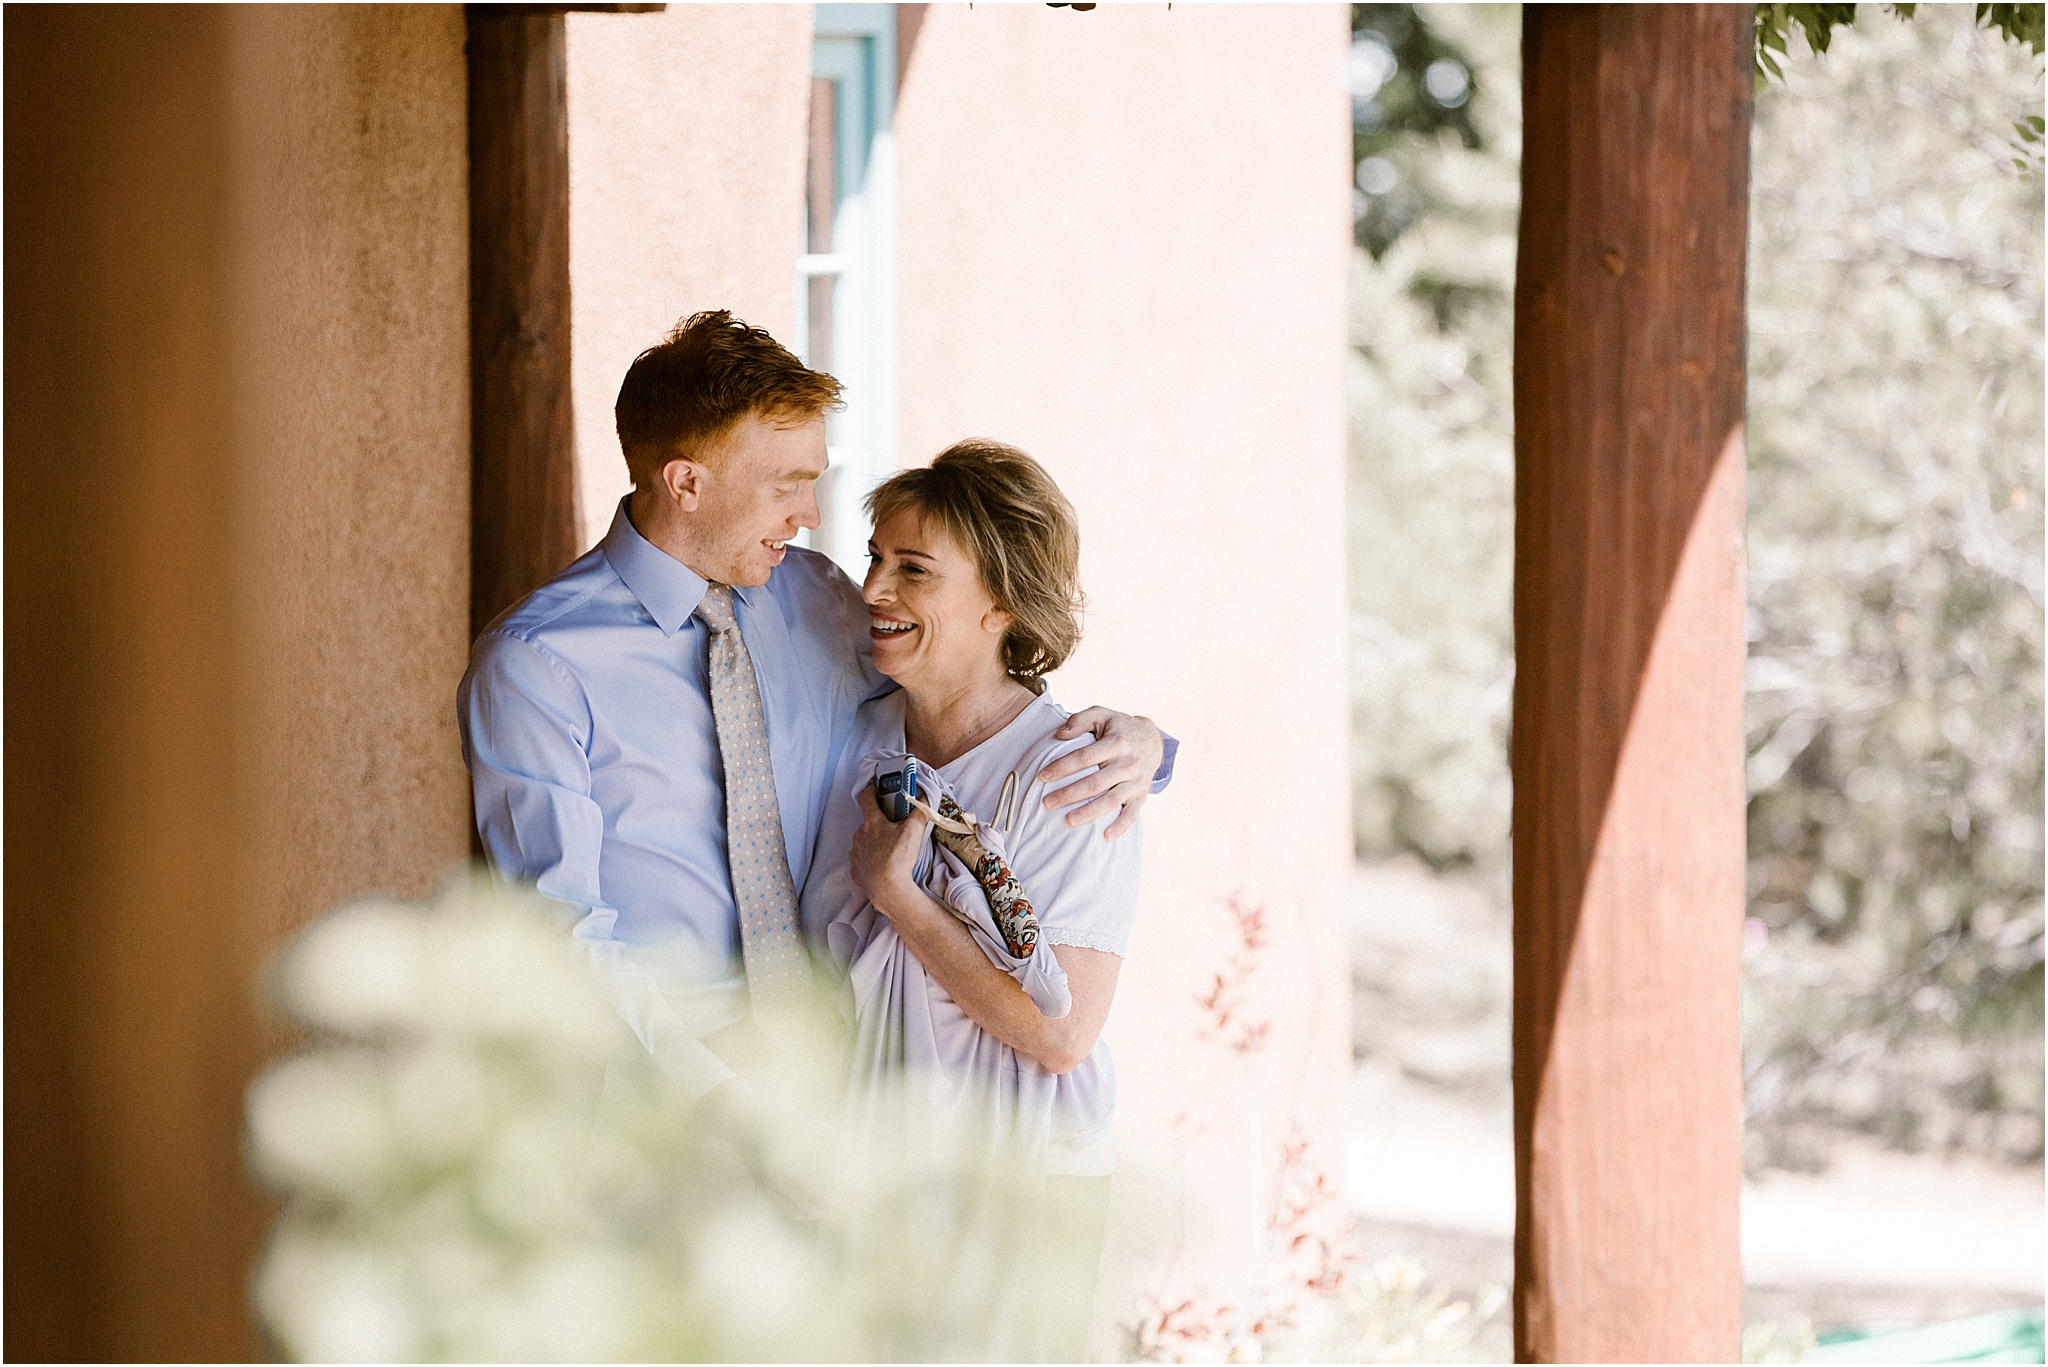 AMELIA_JASON_SANTA FE_ WEDDING_BLUE ROSE PHOTOGRAPHY29